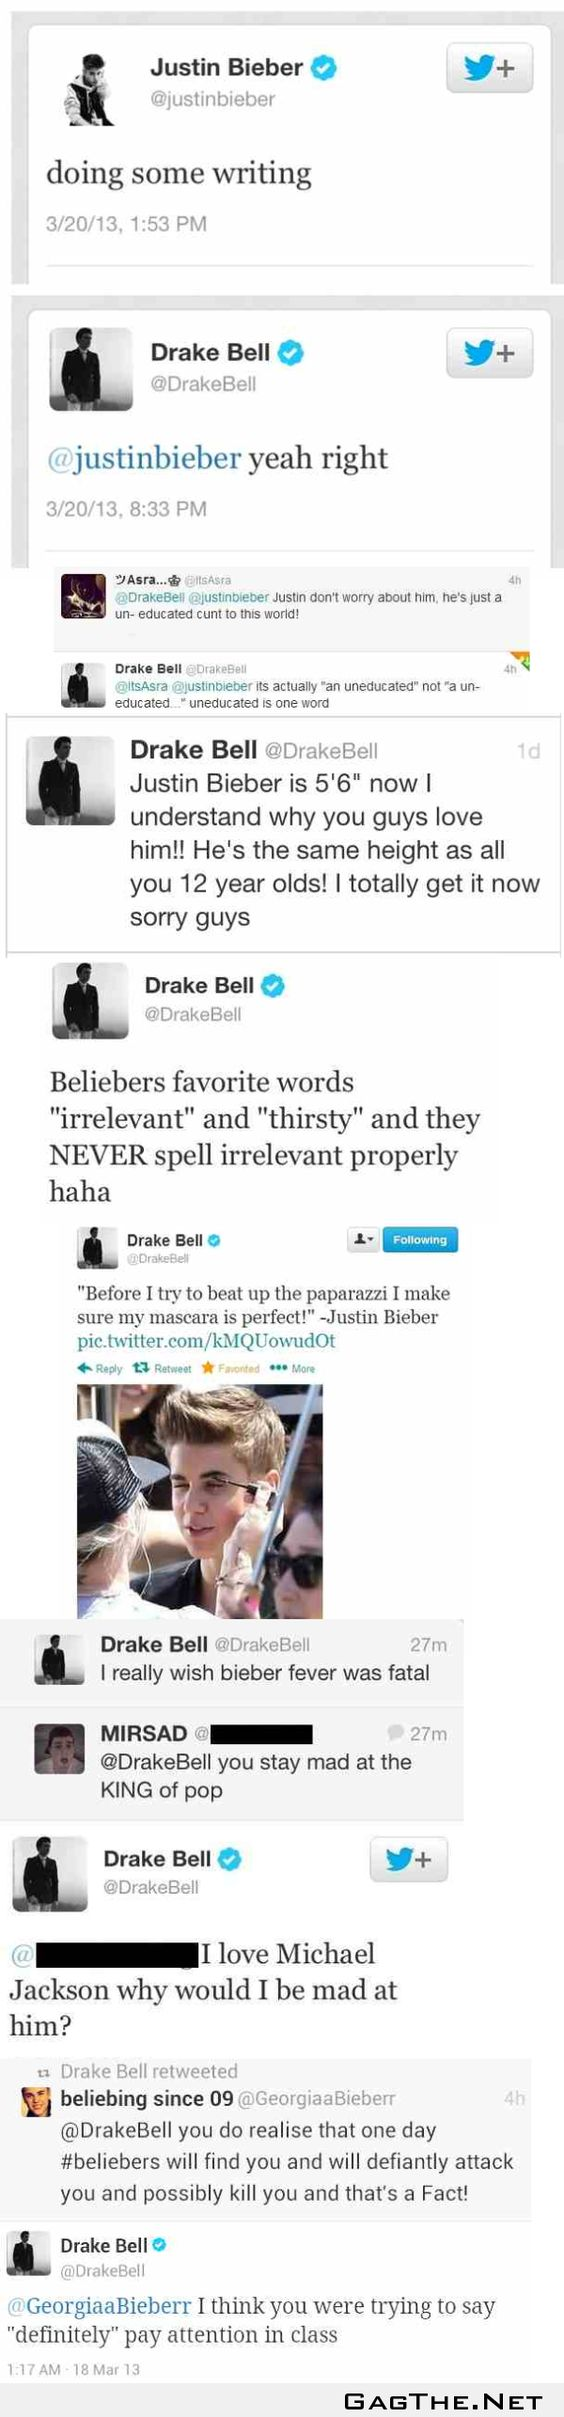 Ladies and gentlemen, Drake Bell. *stands up and slowly claps* this dude is amazing!!!! HE DESERVES TO GET AN AWARD!!